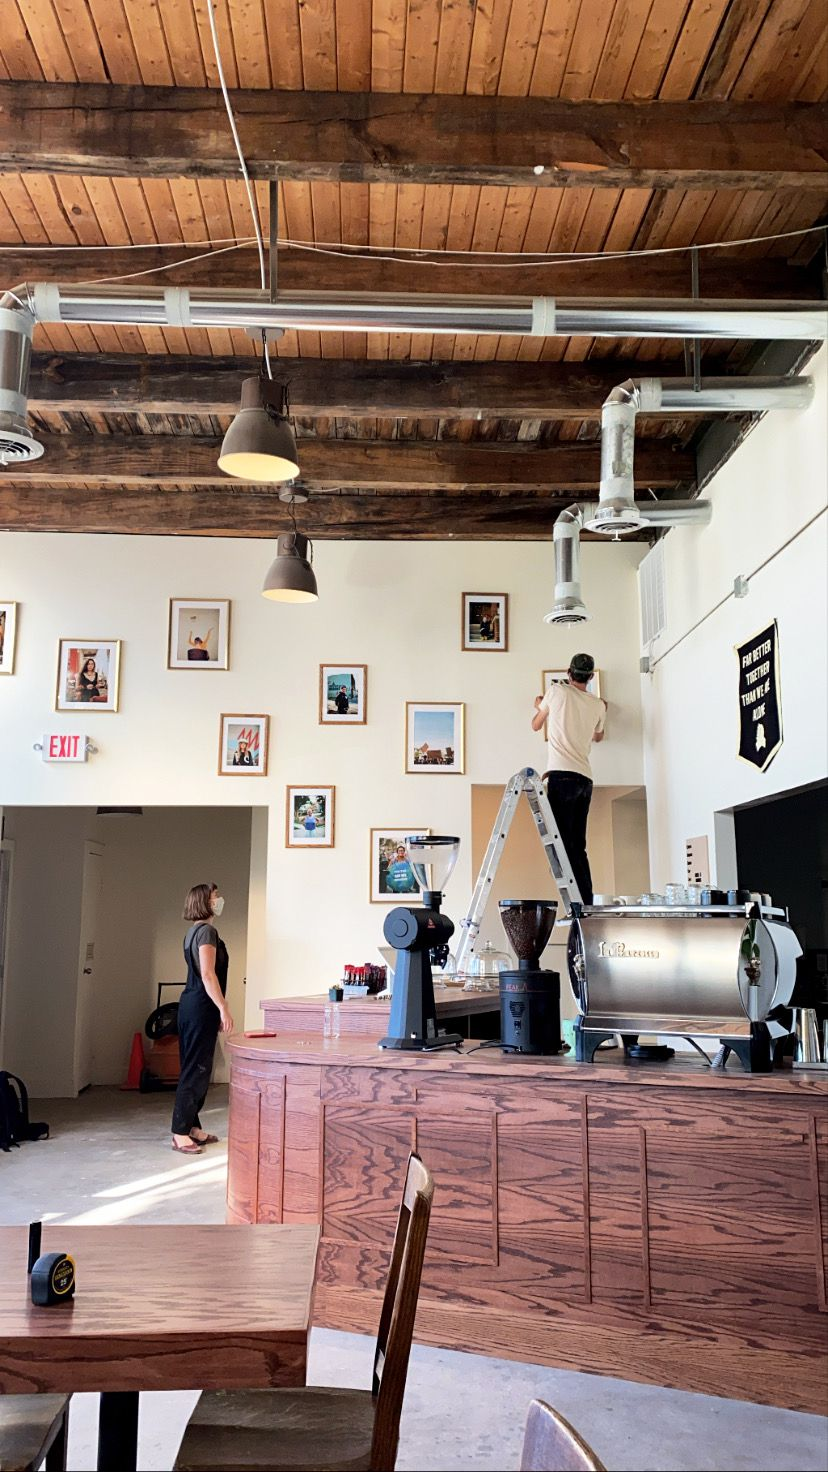 People in masks hang framed art on the walls behind a wooden coffee bar at Gathering Coffee Co.